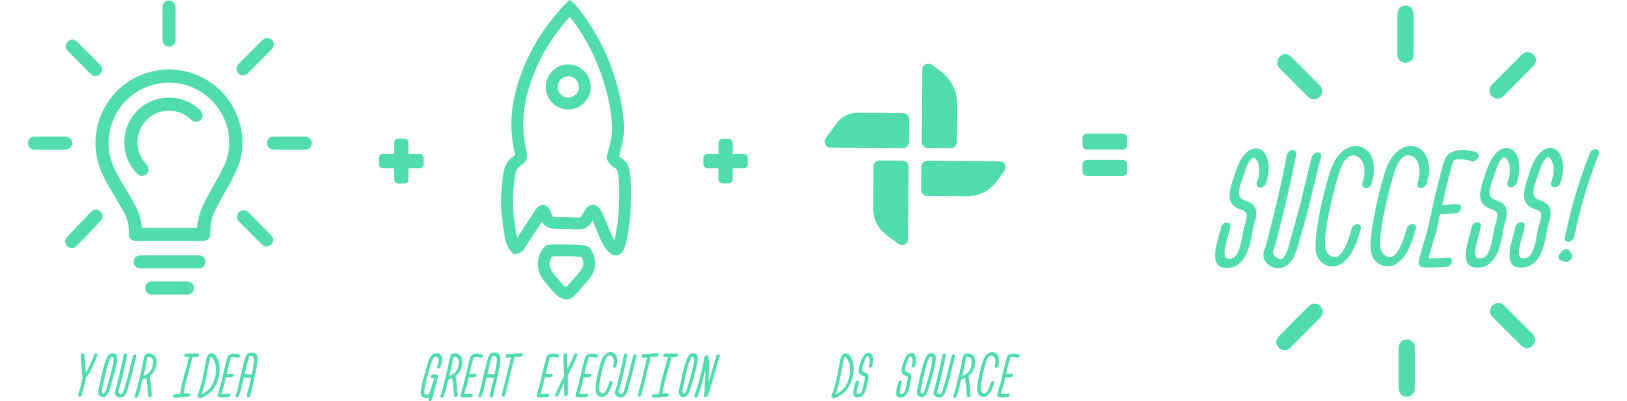 Your + Great + Execution + DS Source = Success